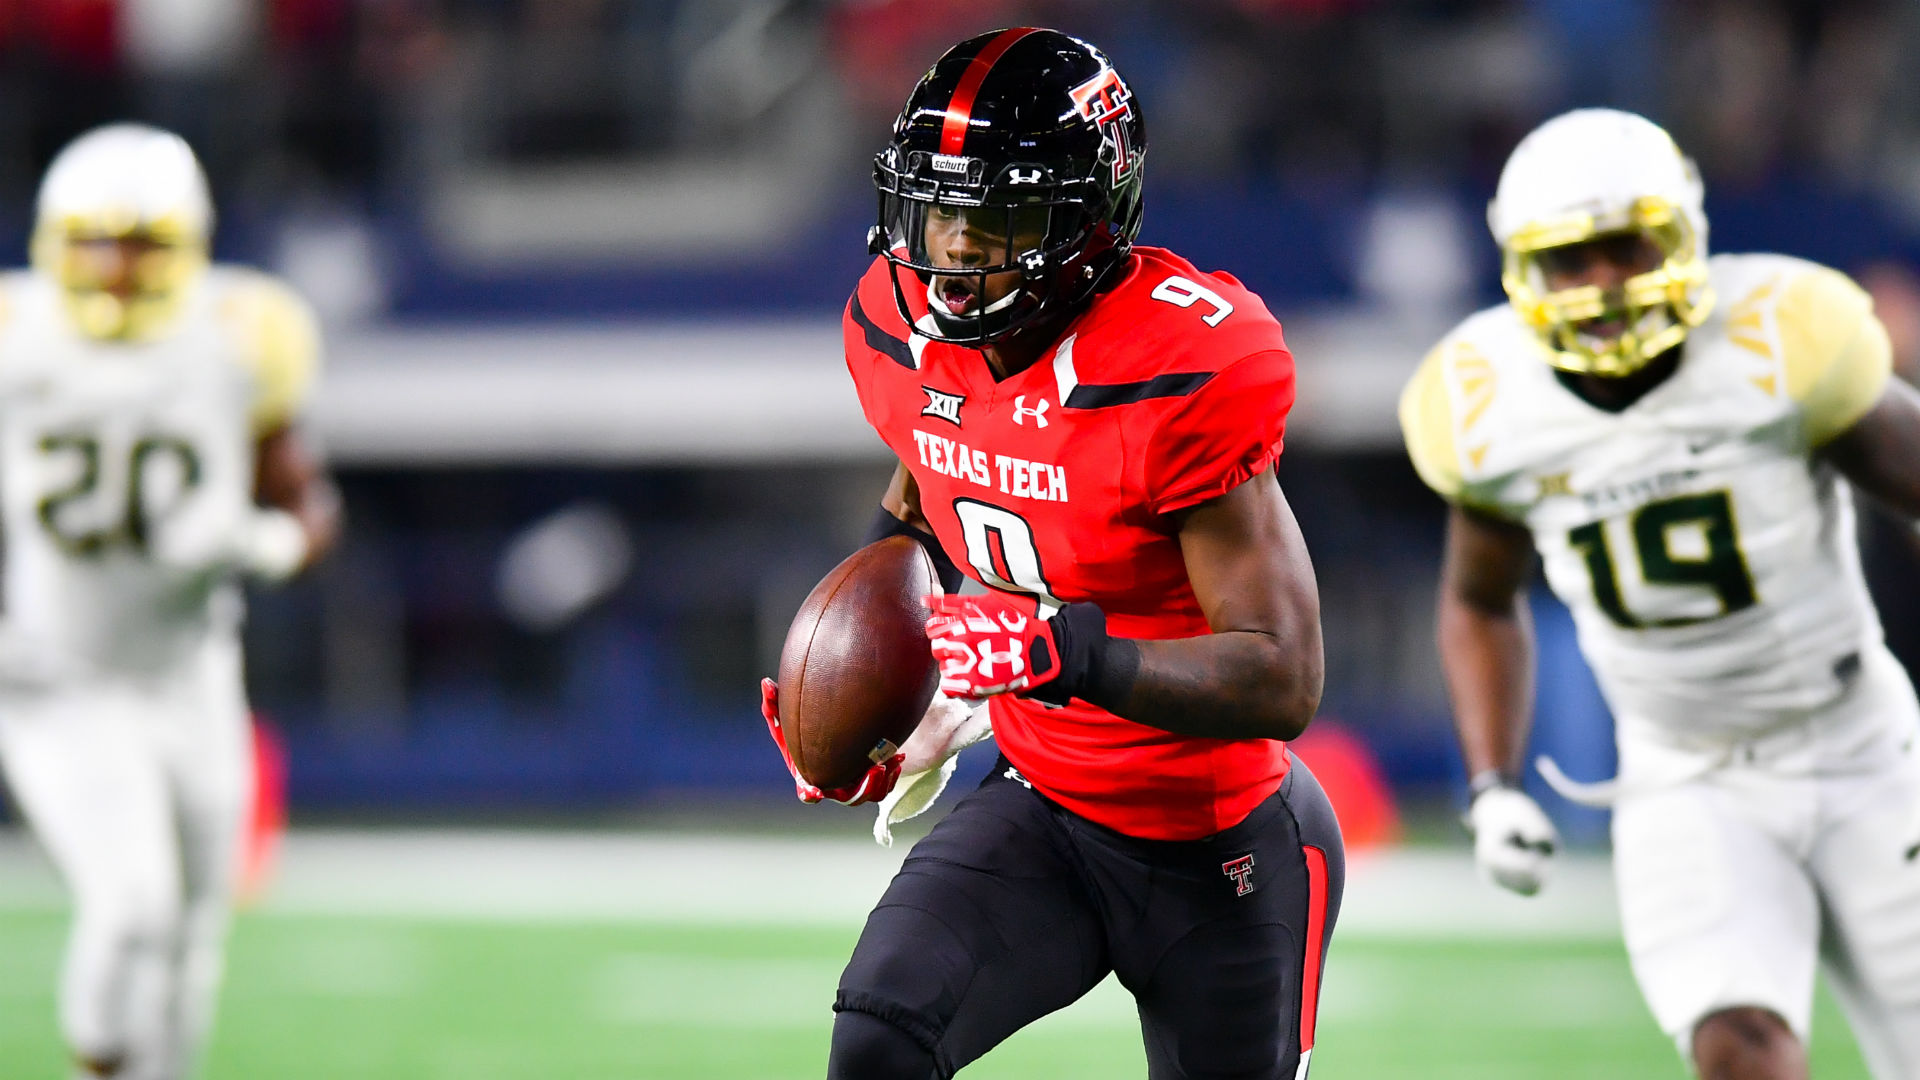 Texas Tech wide receiver Jonathan Giles transfers to LSU